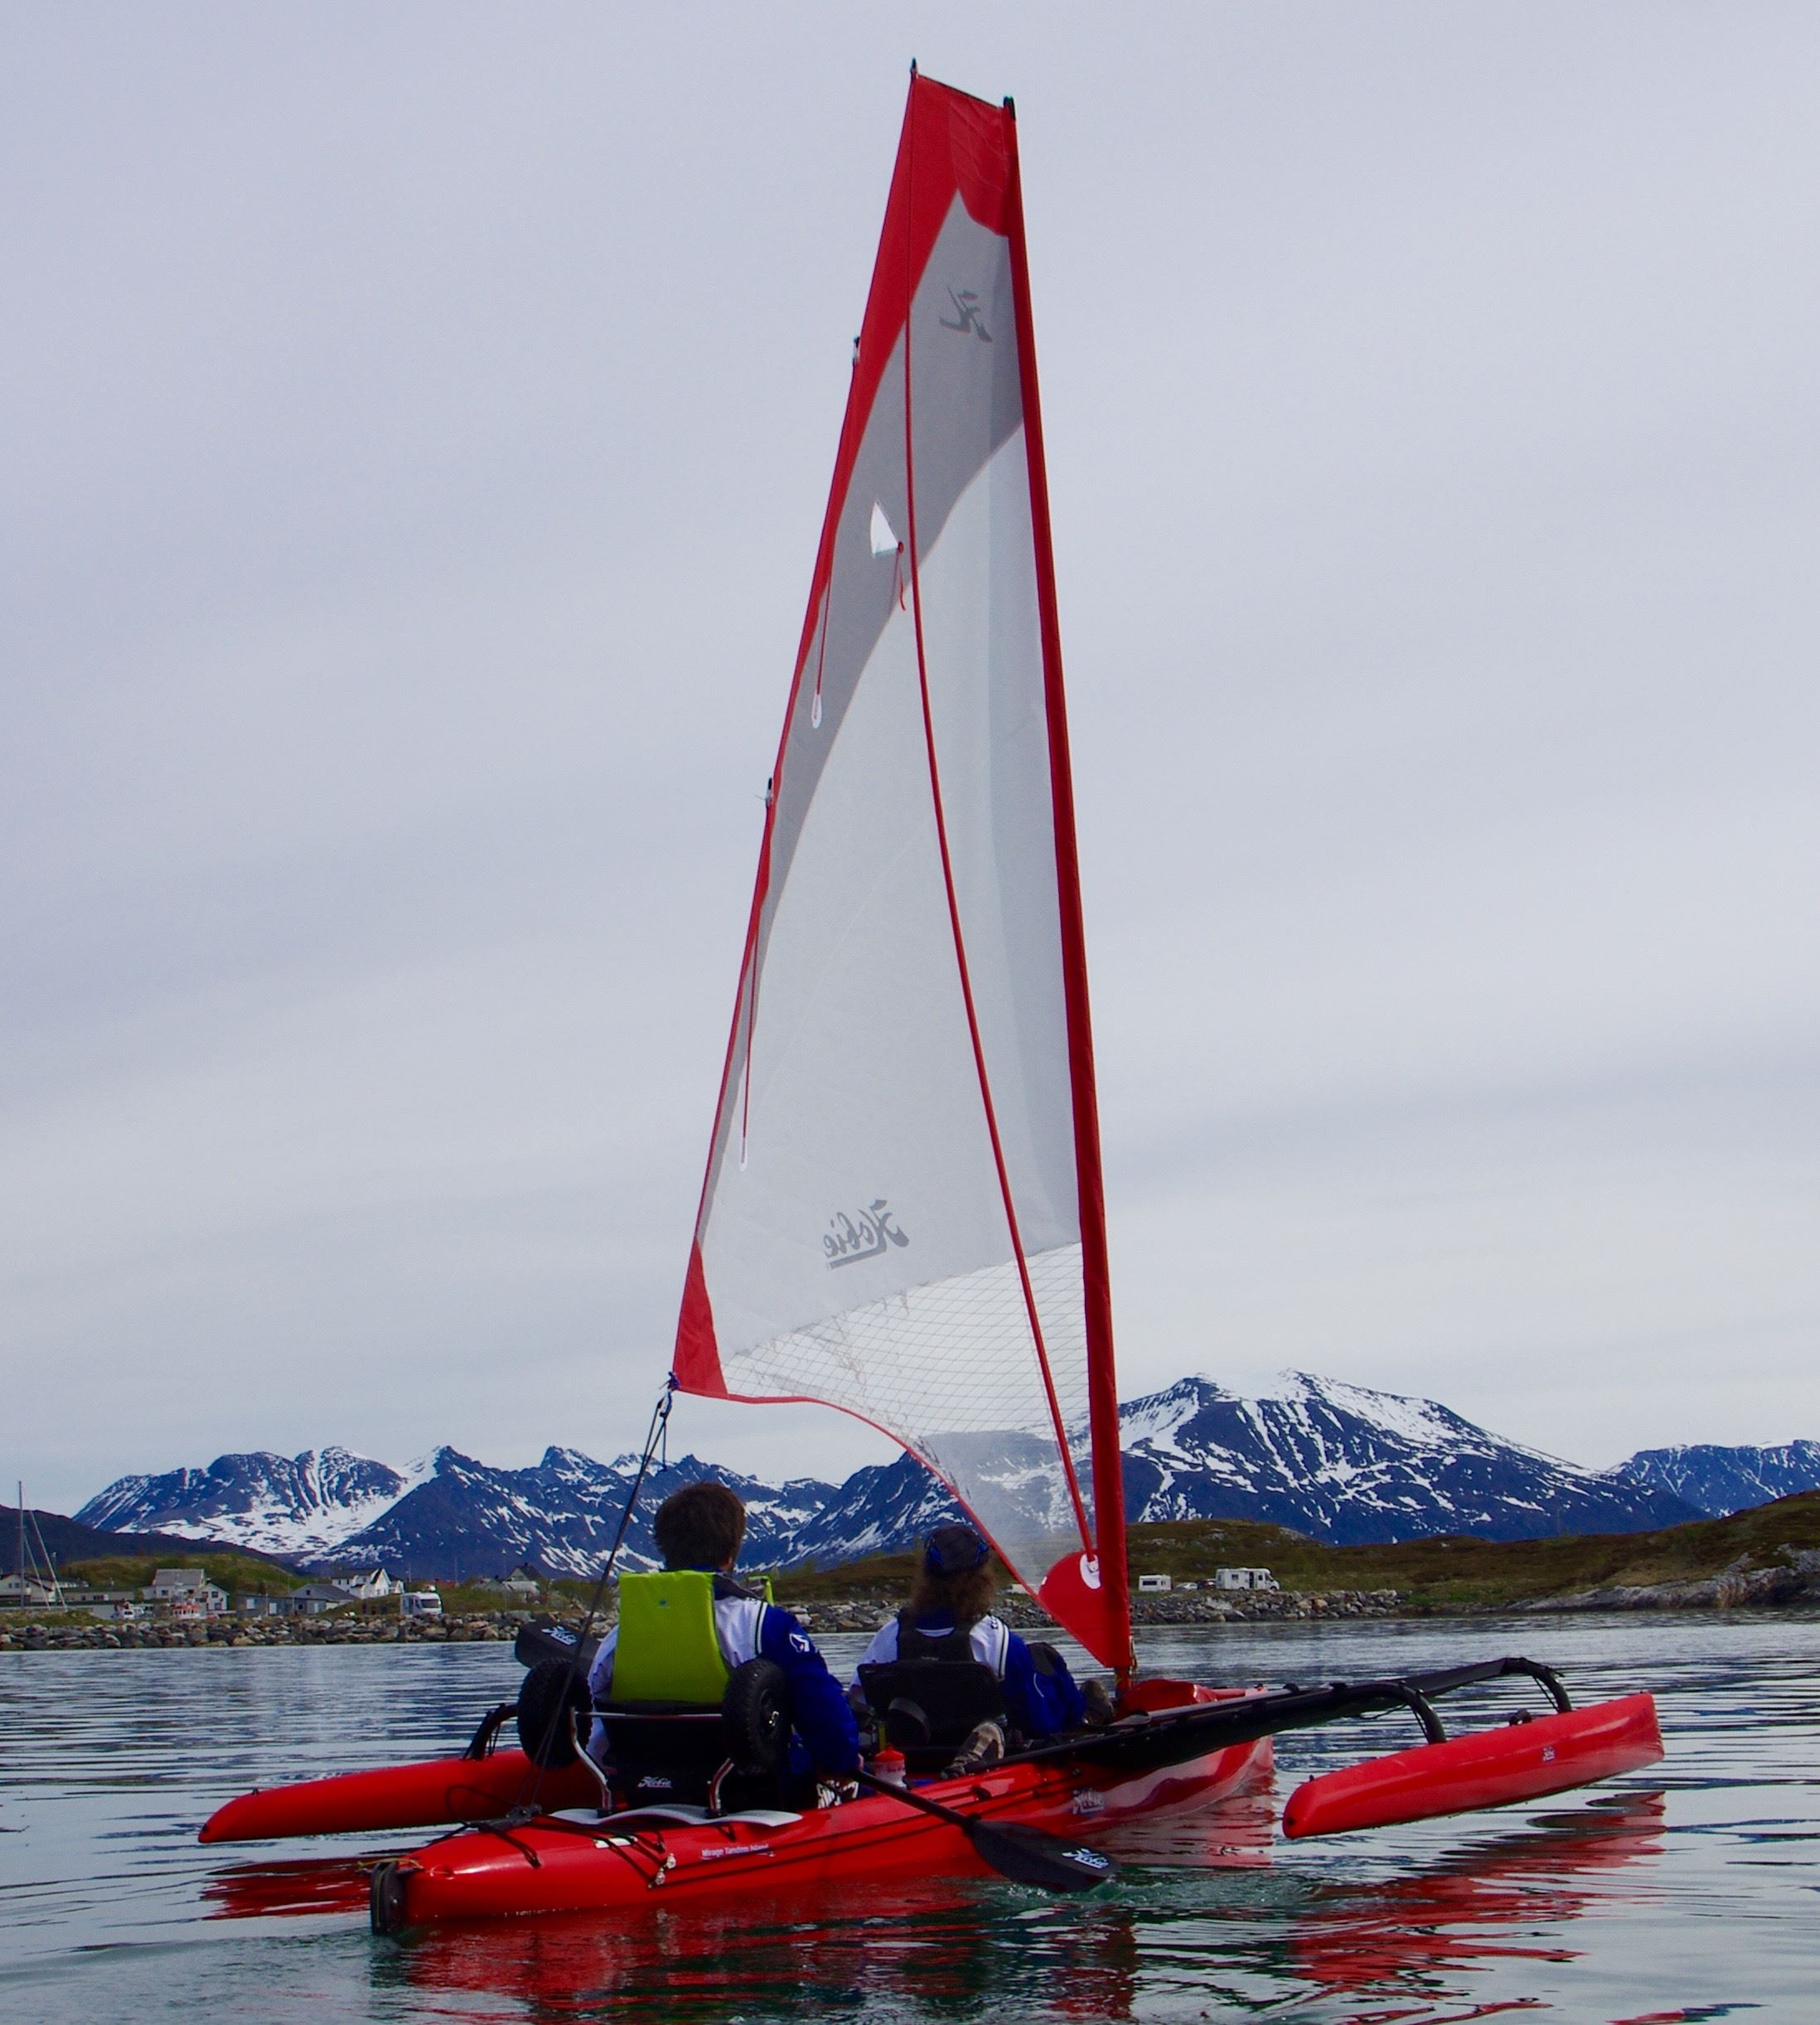 """69Nord,  © 69Nord, Daytrip Whale Watching with """"sit on top Hobie kayak in Kvaløya – 69Nord Sommarøy Outdoor Center"""